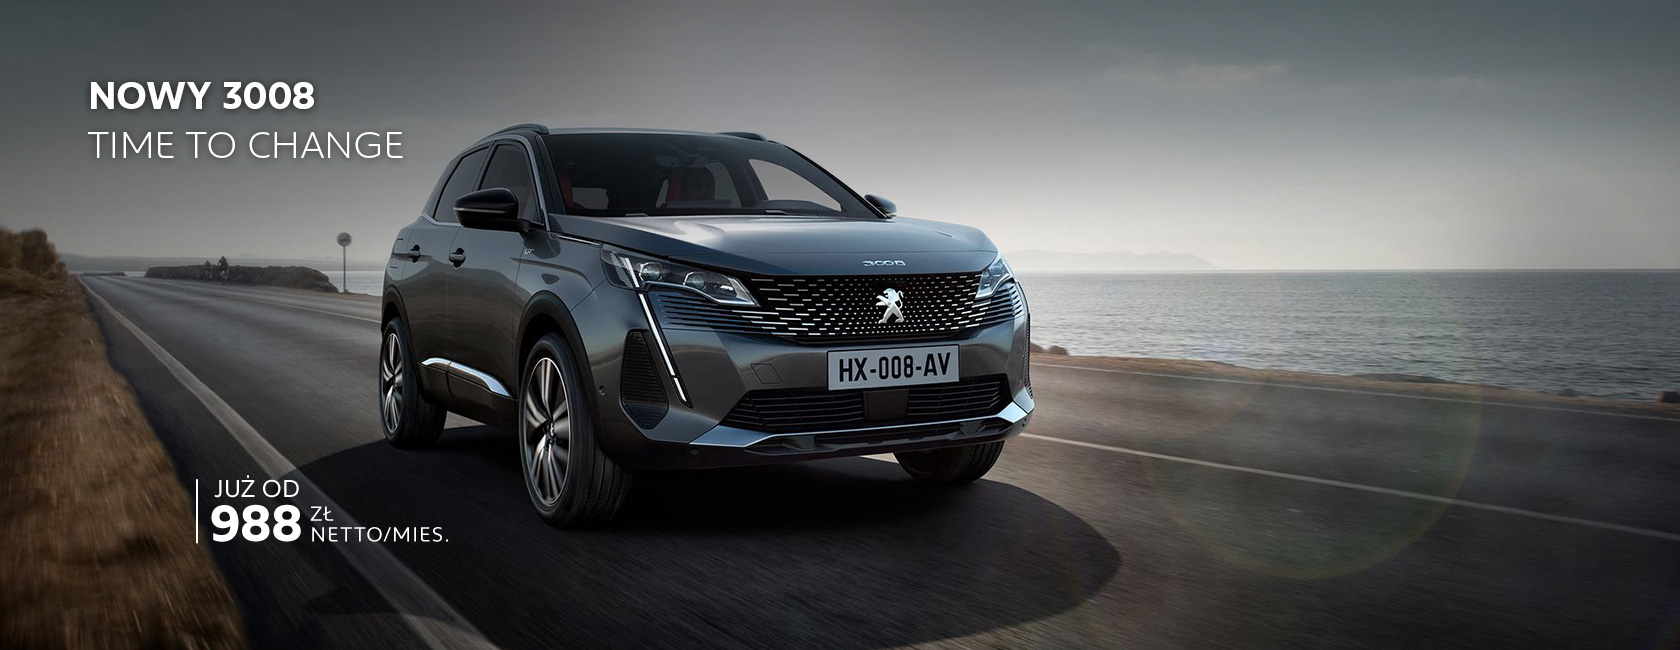 NOWY SUV PEUGEOT 3008